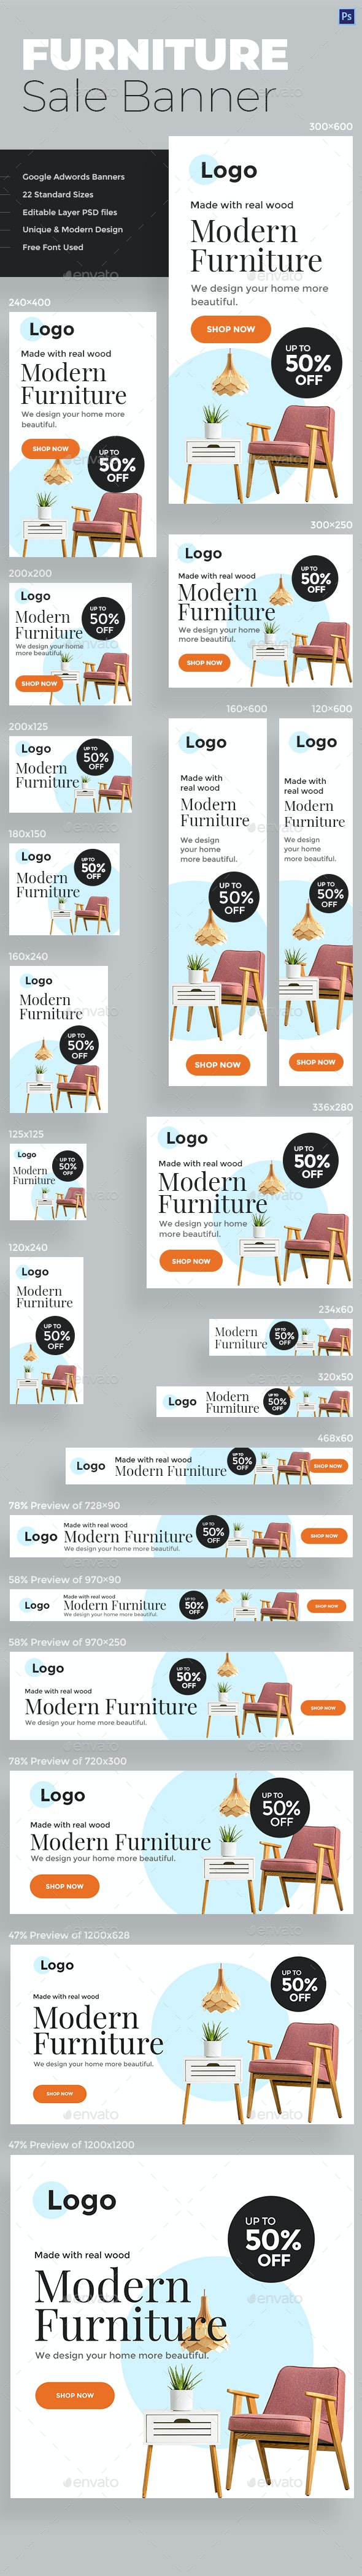 Furniture Sale Web Banners - Banners & Ads Web Elements